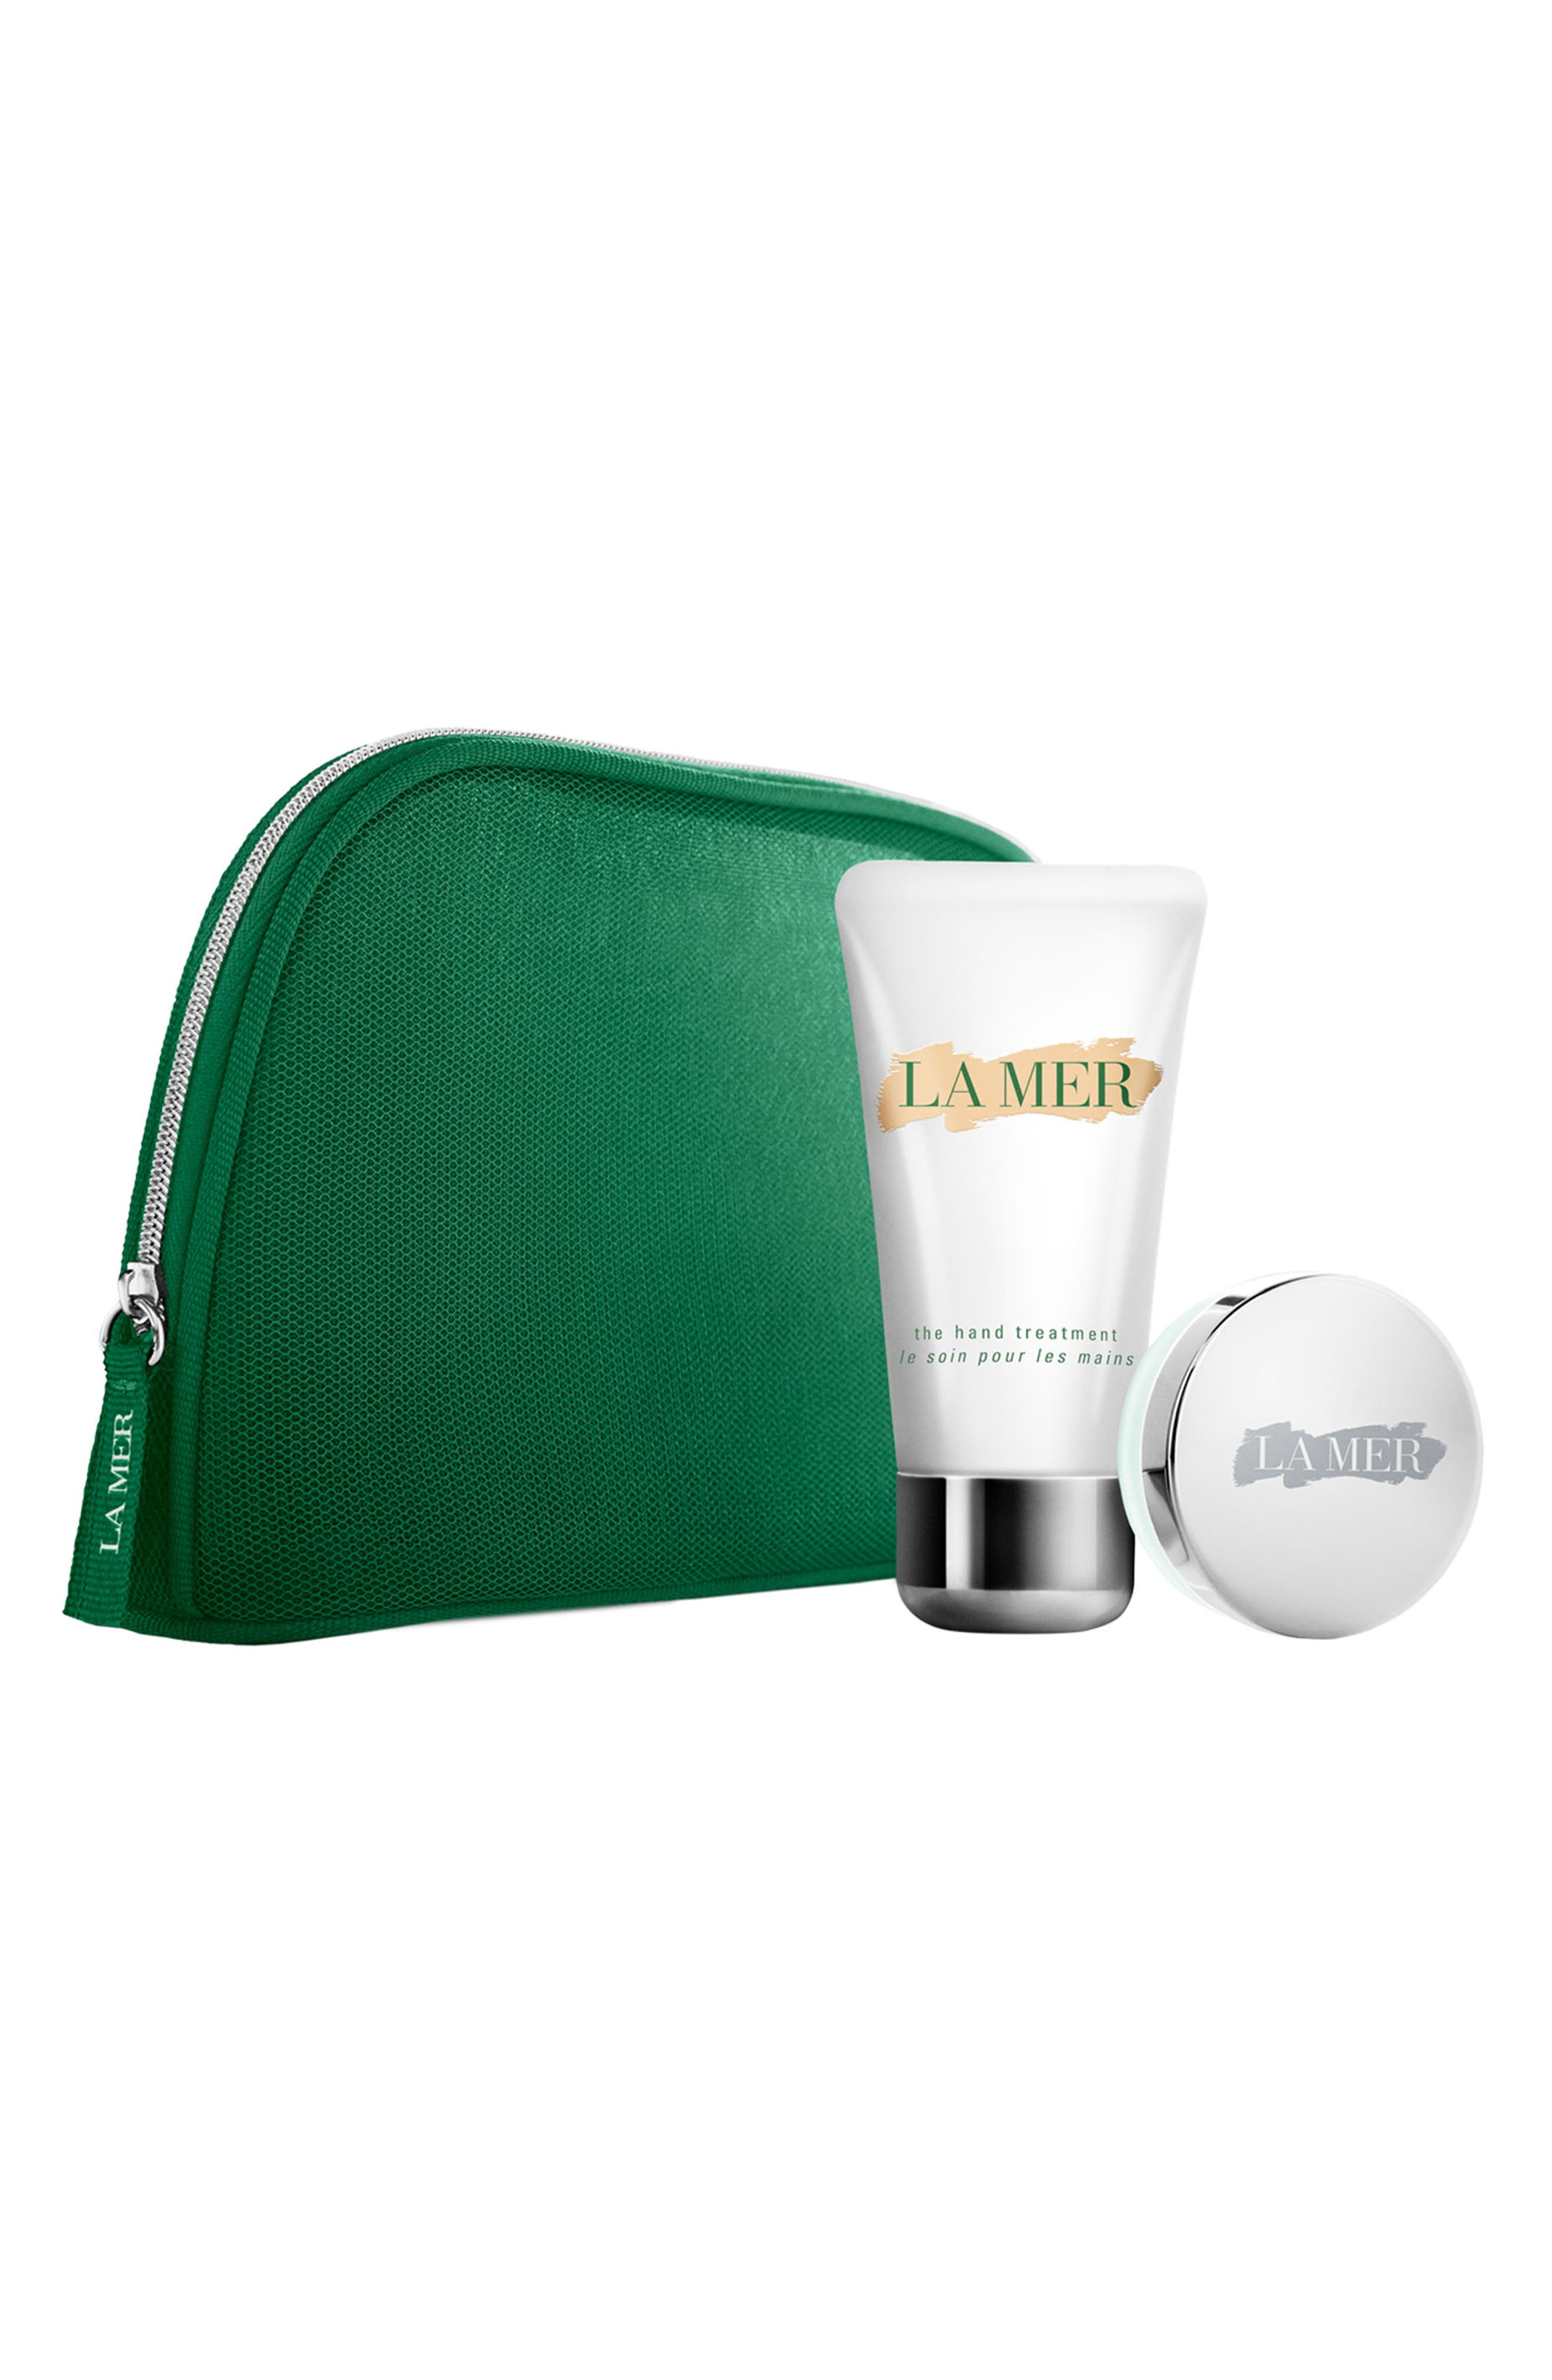 La Mer The Replenishing Collection ($105 Value)